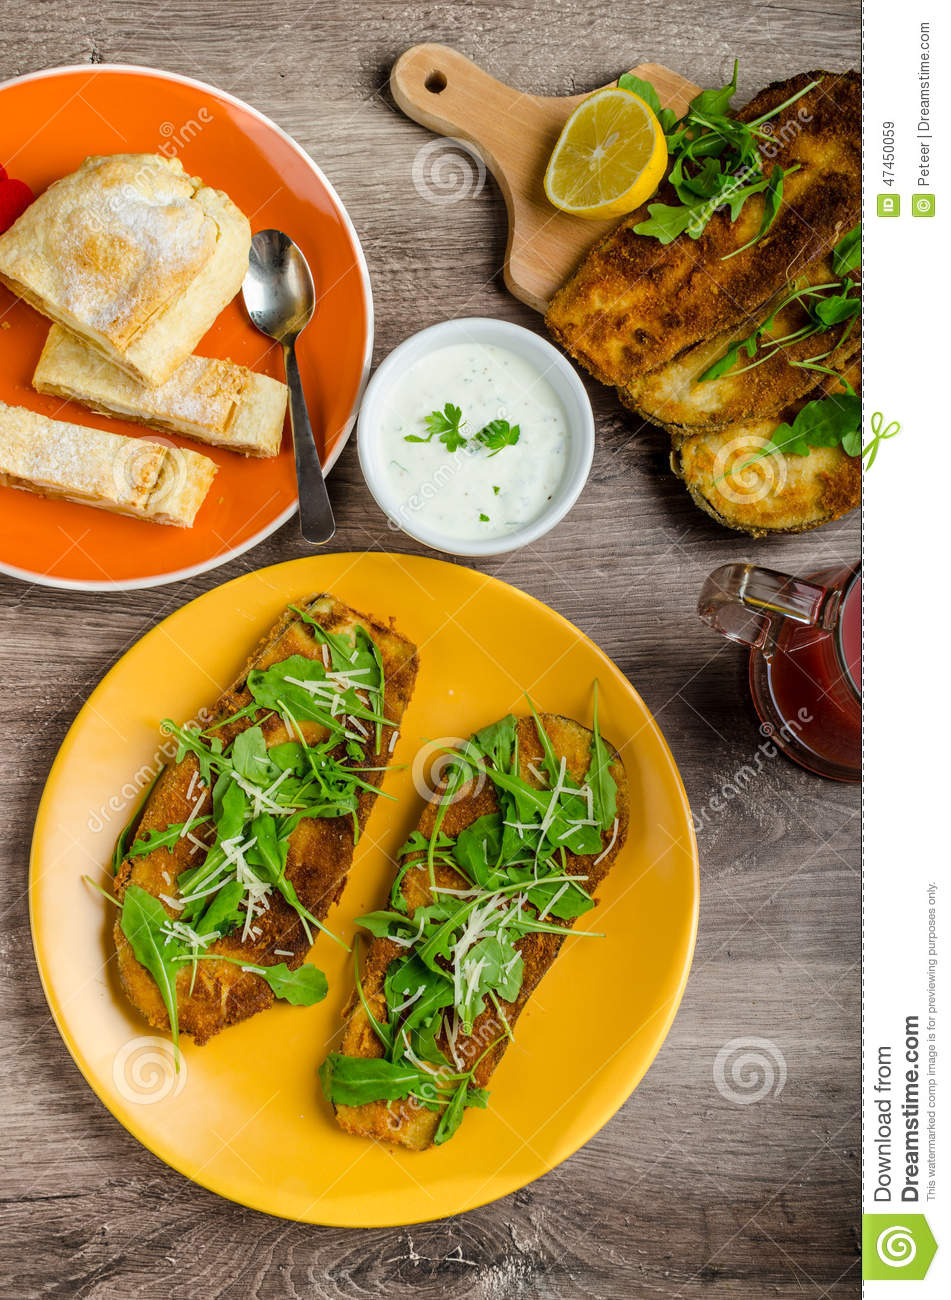 Breaded Eggplant With Arugula And Parmesan Recipes — Dishmaps